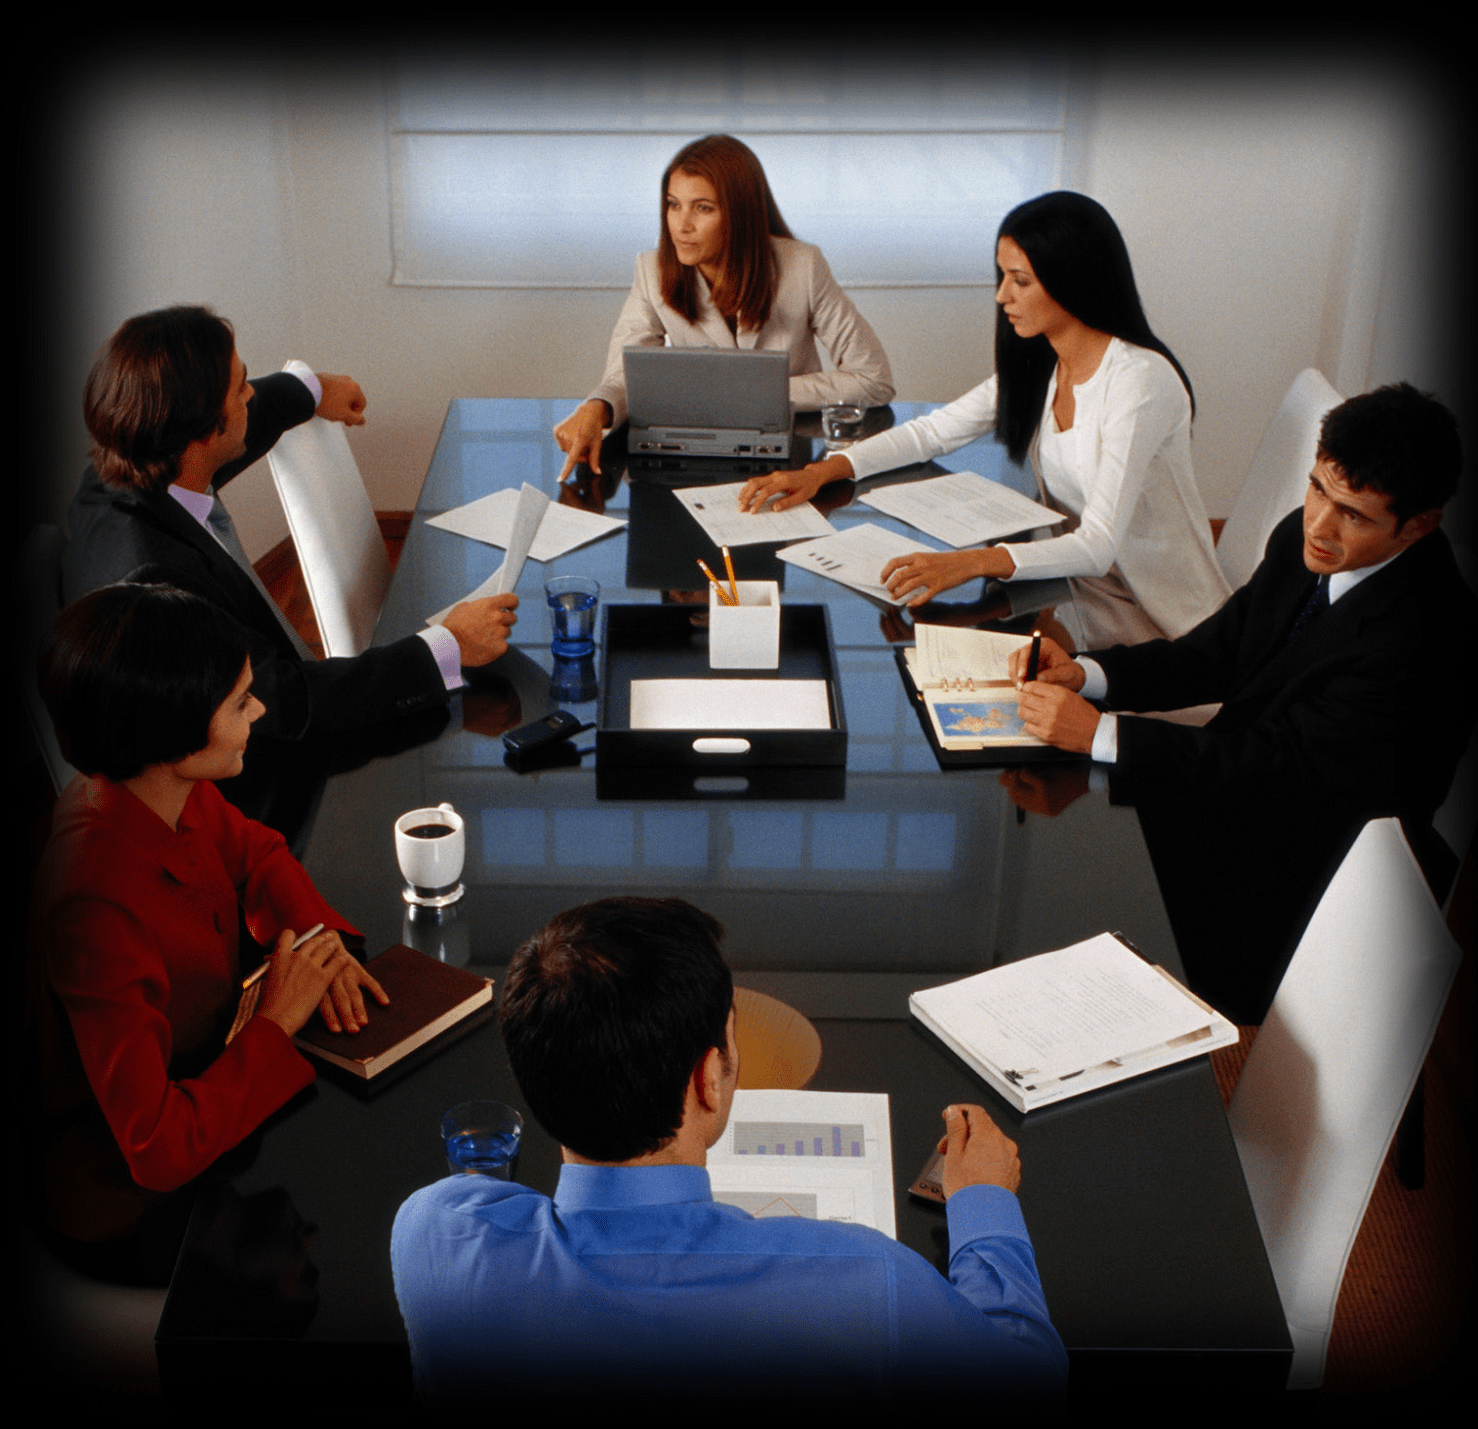 Pci global inc project management training e learning courses xflitez Gallery